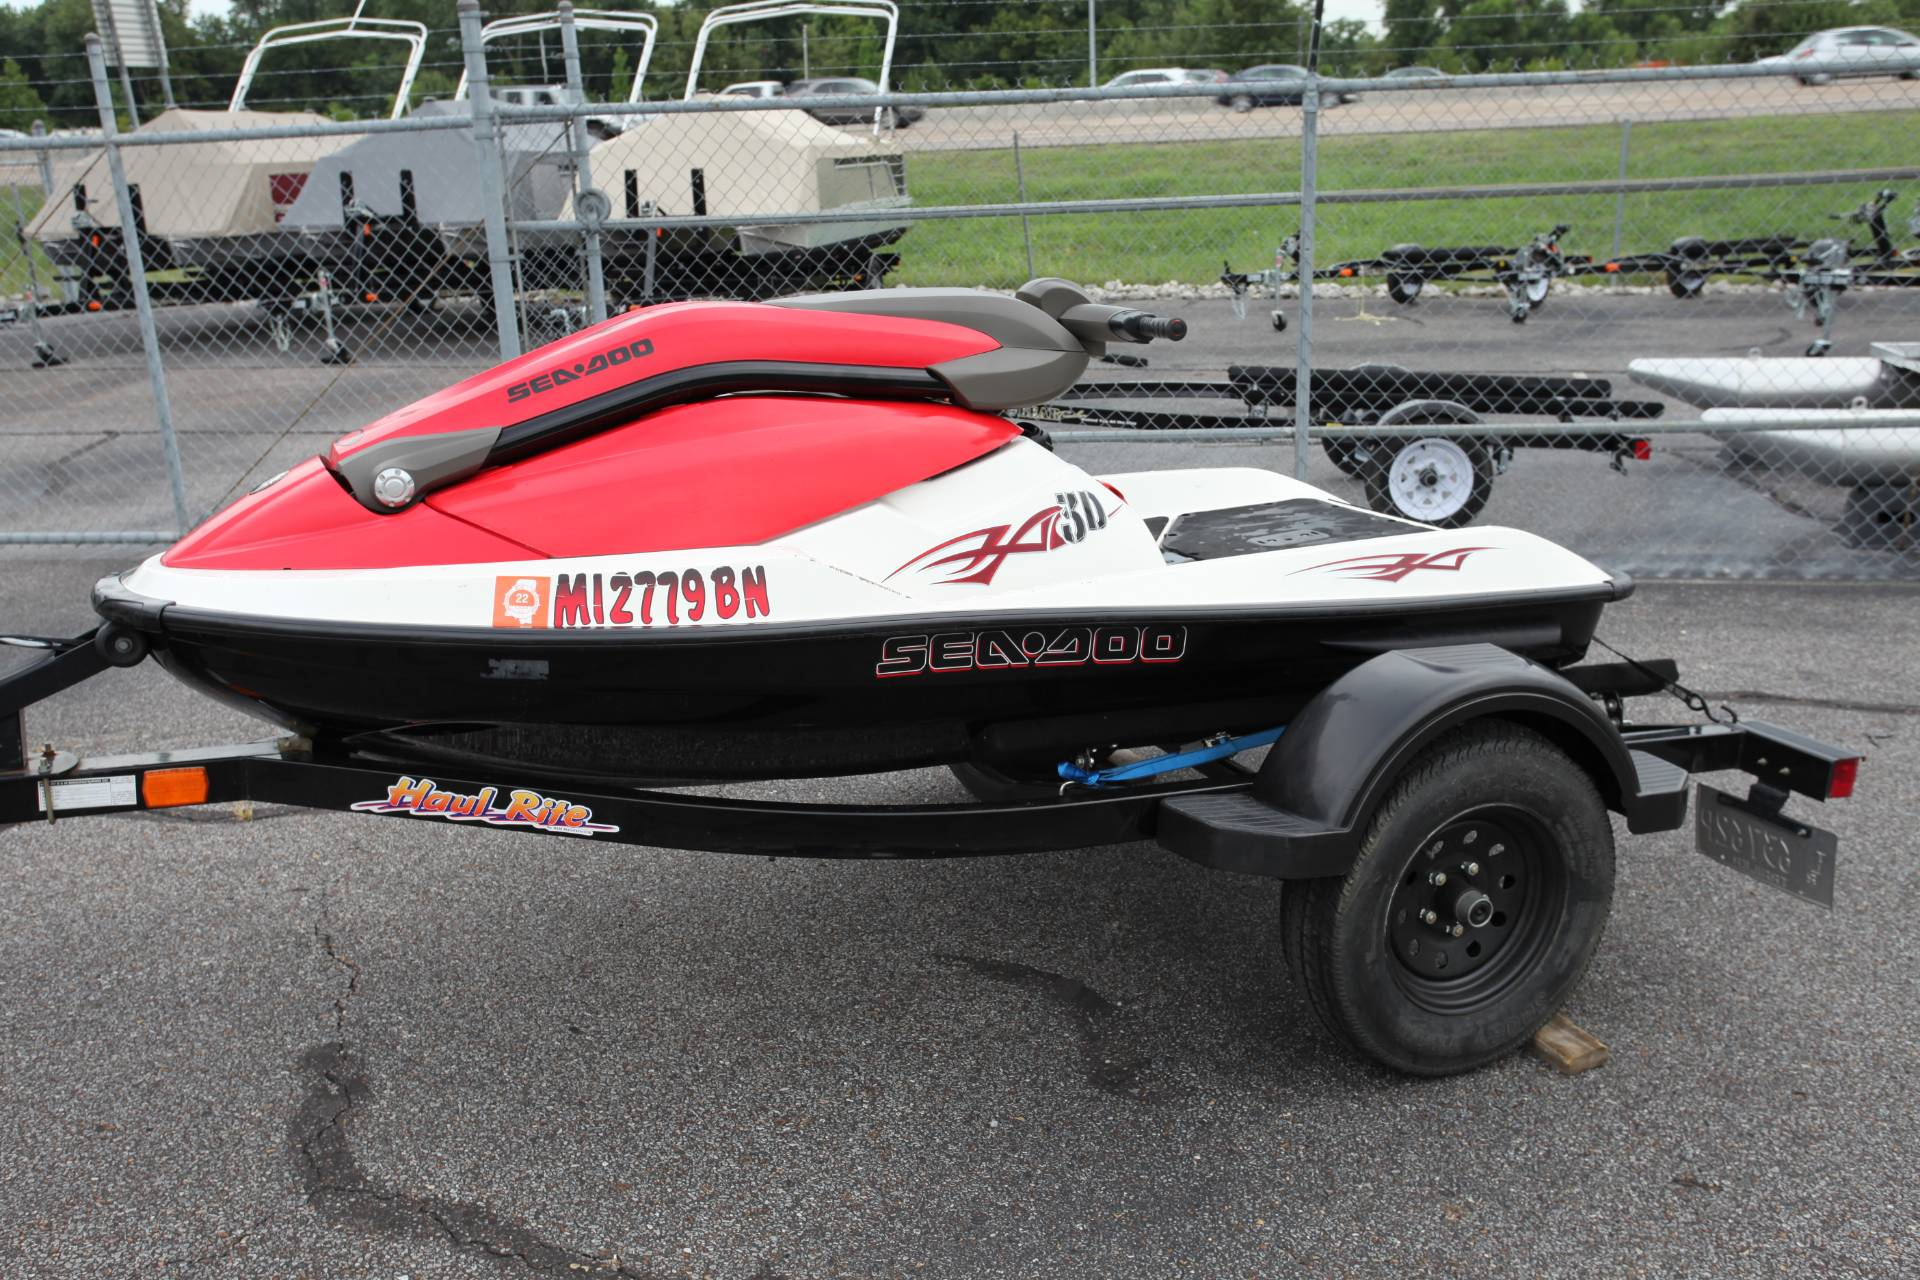 2005 Sea-Doo 3D™ Vert & Moto in Memphis, Tennessee - Photo 1